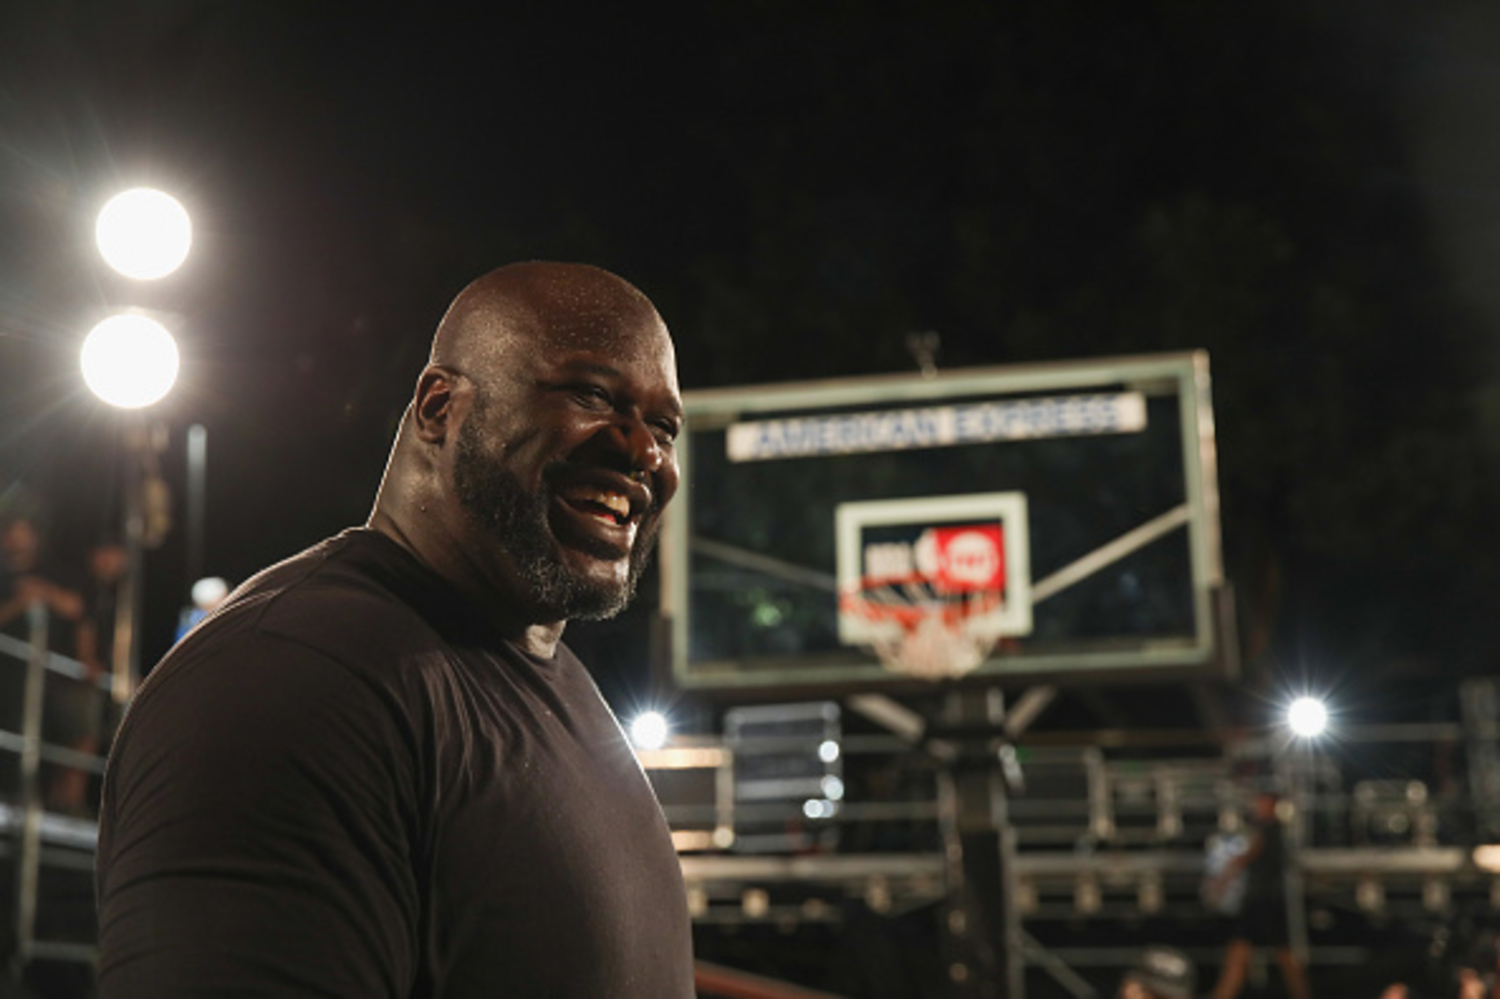 Shaquille O'Neal won four titles during his NBA career